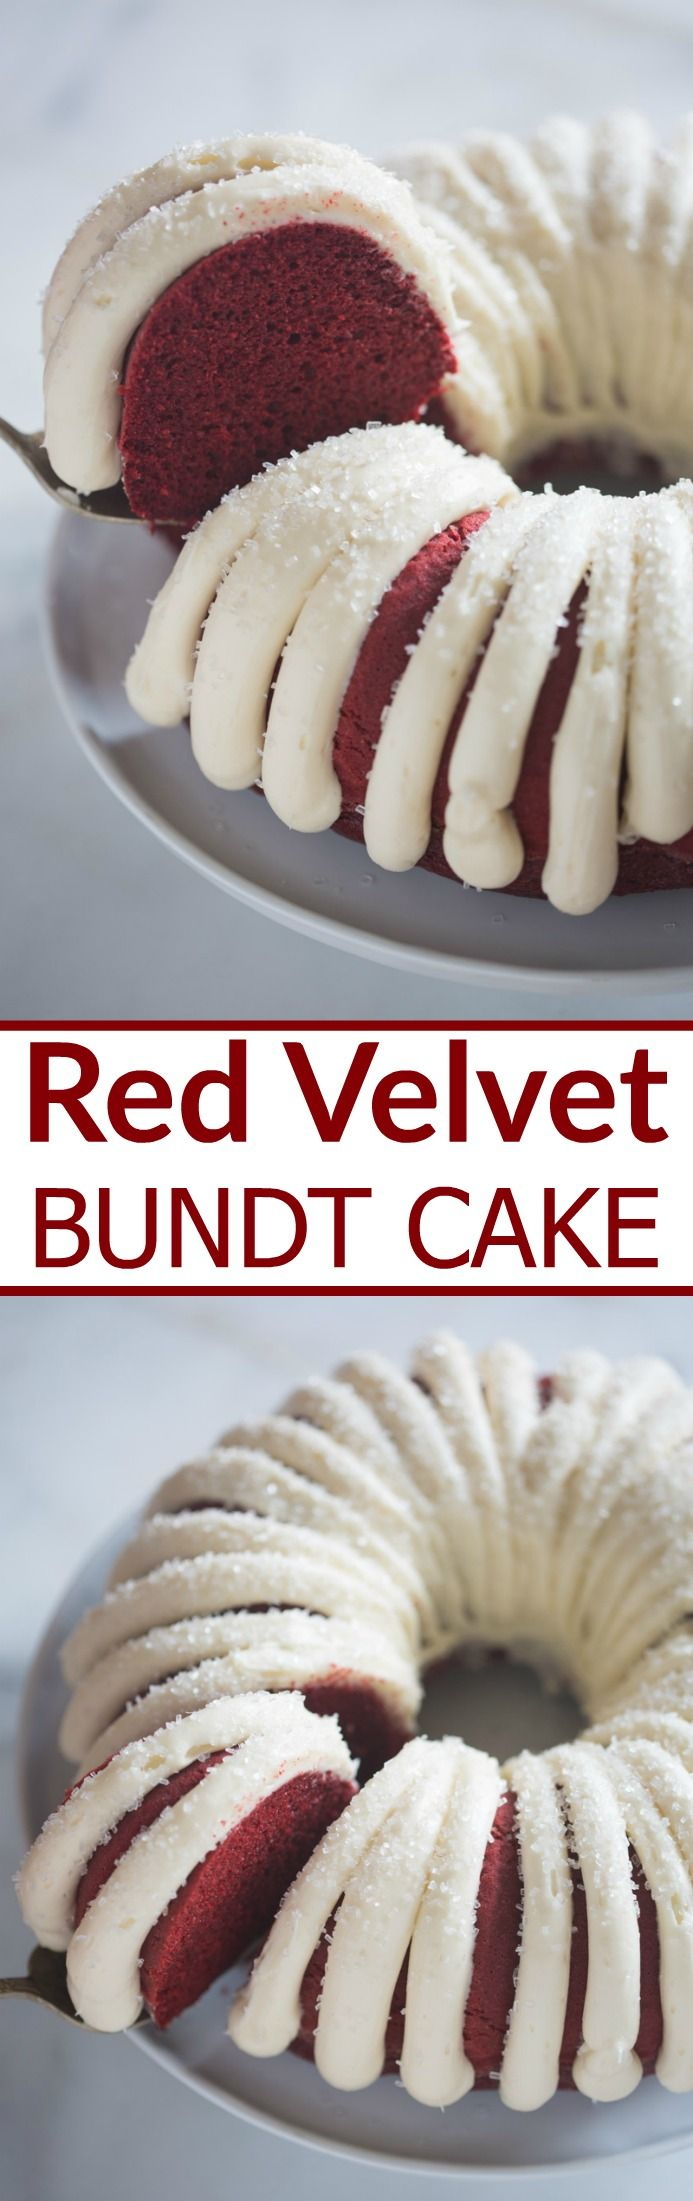 Moist and tender Red Velvet Bundt Cake with cream cheese frosting. Add some chocolate chips for a an even more delicious chocolate flavor.   Tastes Better From Scratch